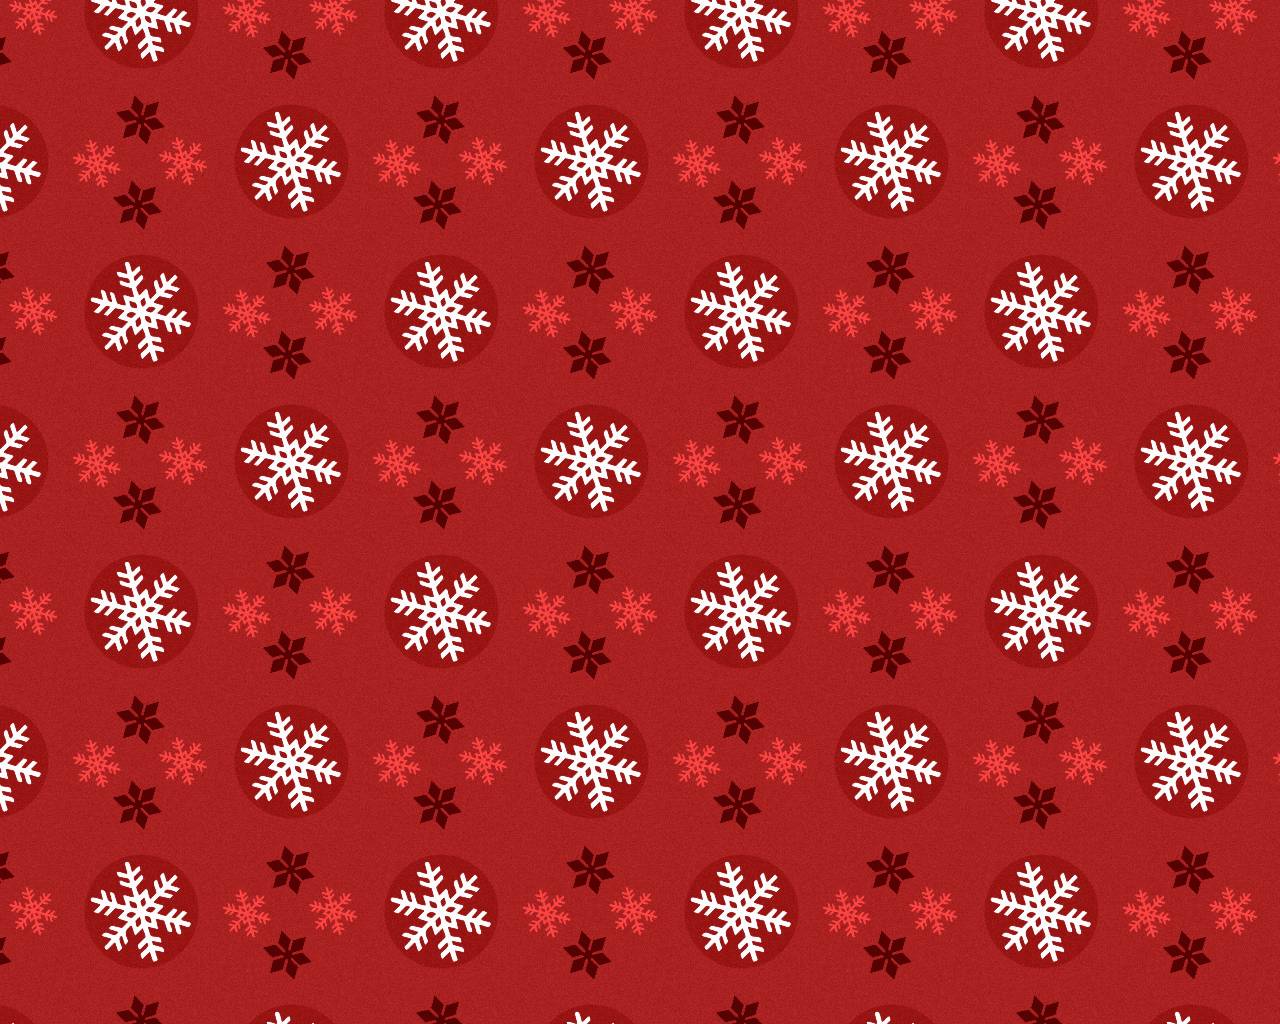 HD Christmas Backgrounds Patterns and Christmas 2013 Wallpapers 1280x1024